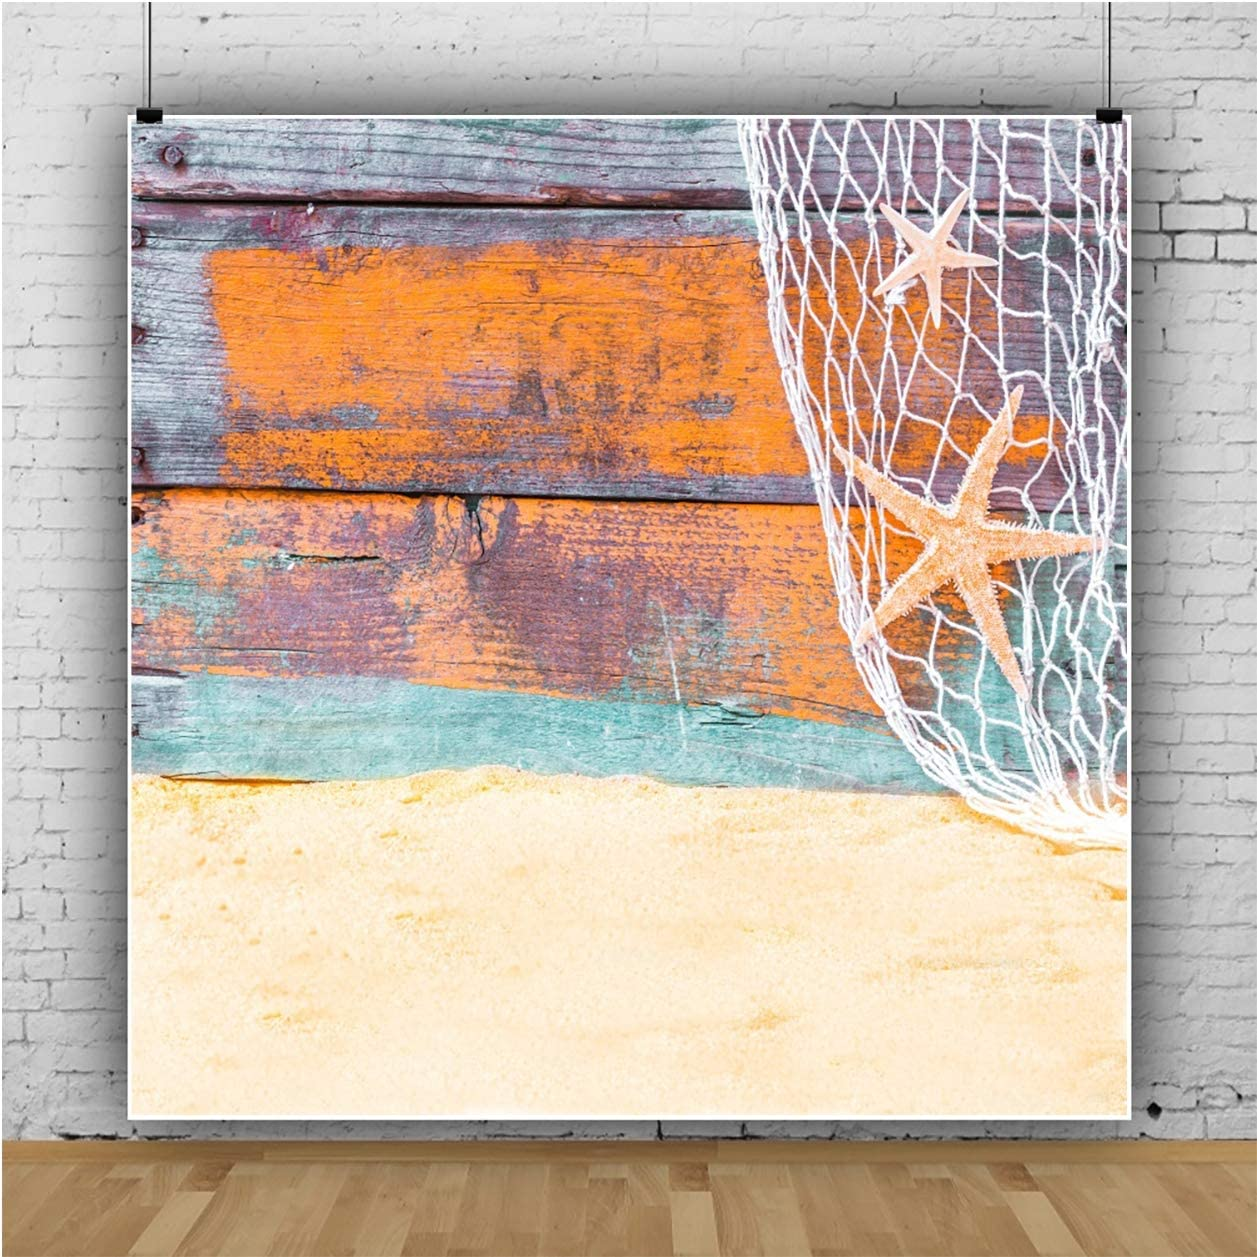 YEELE 10x10ft Nautical Theme Backdrop Rustic Wood Floor Old Fishing Net Photography Background Kids Girls Portrait Tropical Hawaiian Picture Wedding Birthday Decoration Photobooth Props Wallpaper